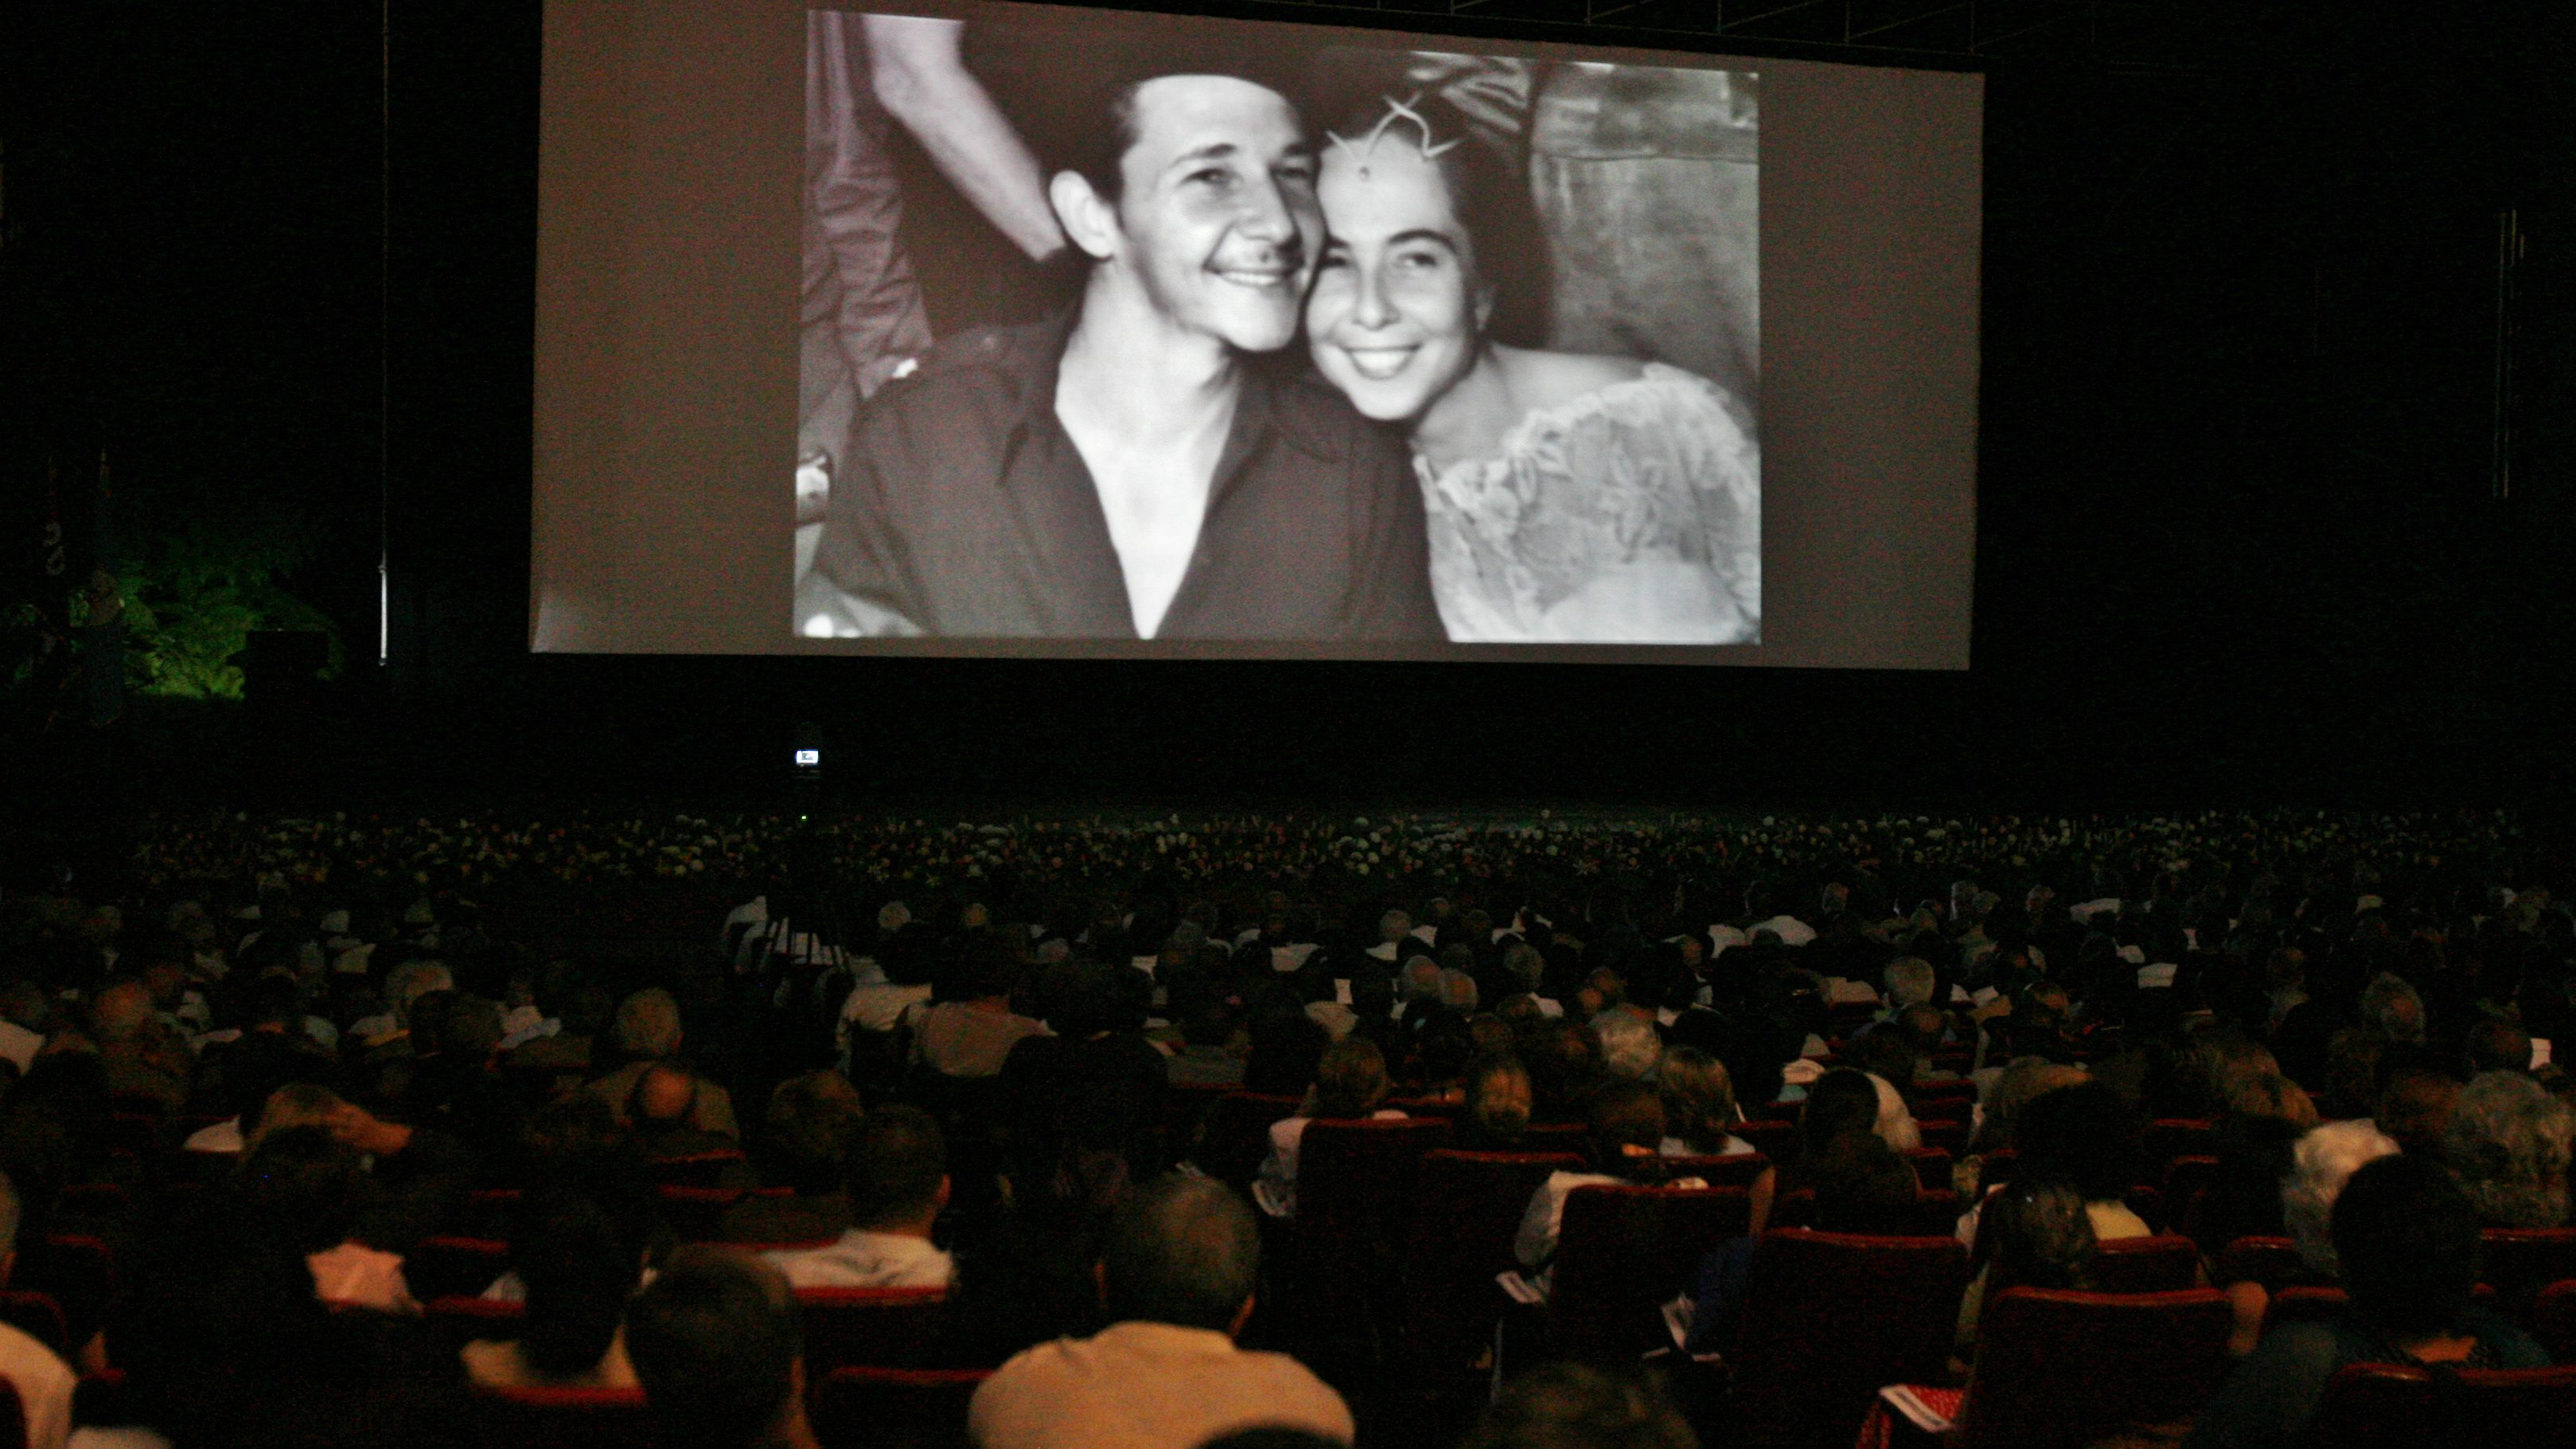 The audience looks at photographs of Cuba's acting President Raul Castro and Vilma Espin on their wedding day during the screening of a documentary on the life of Espin at the Karl Marx Theater in Havana June 19, 2007. Espin, sister-in-law of convalescing Cuban leader Fidel Castro and one of the most powerful women in Cuba's political leadership, died on Monday in Havana. She was 77. REUTERS/Claudia Daut (CUBA) - RTR1QYJ2